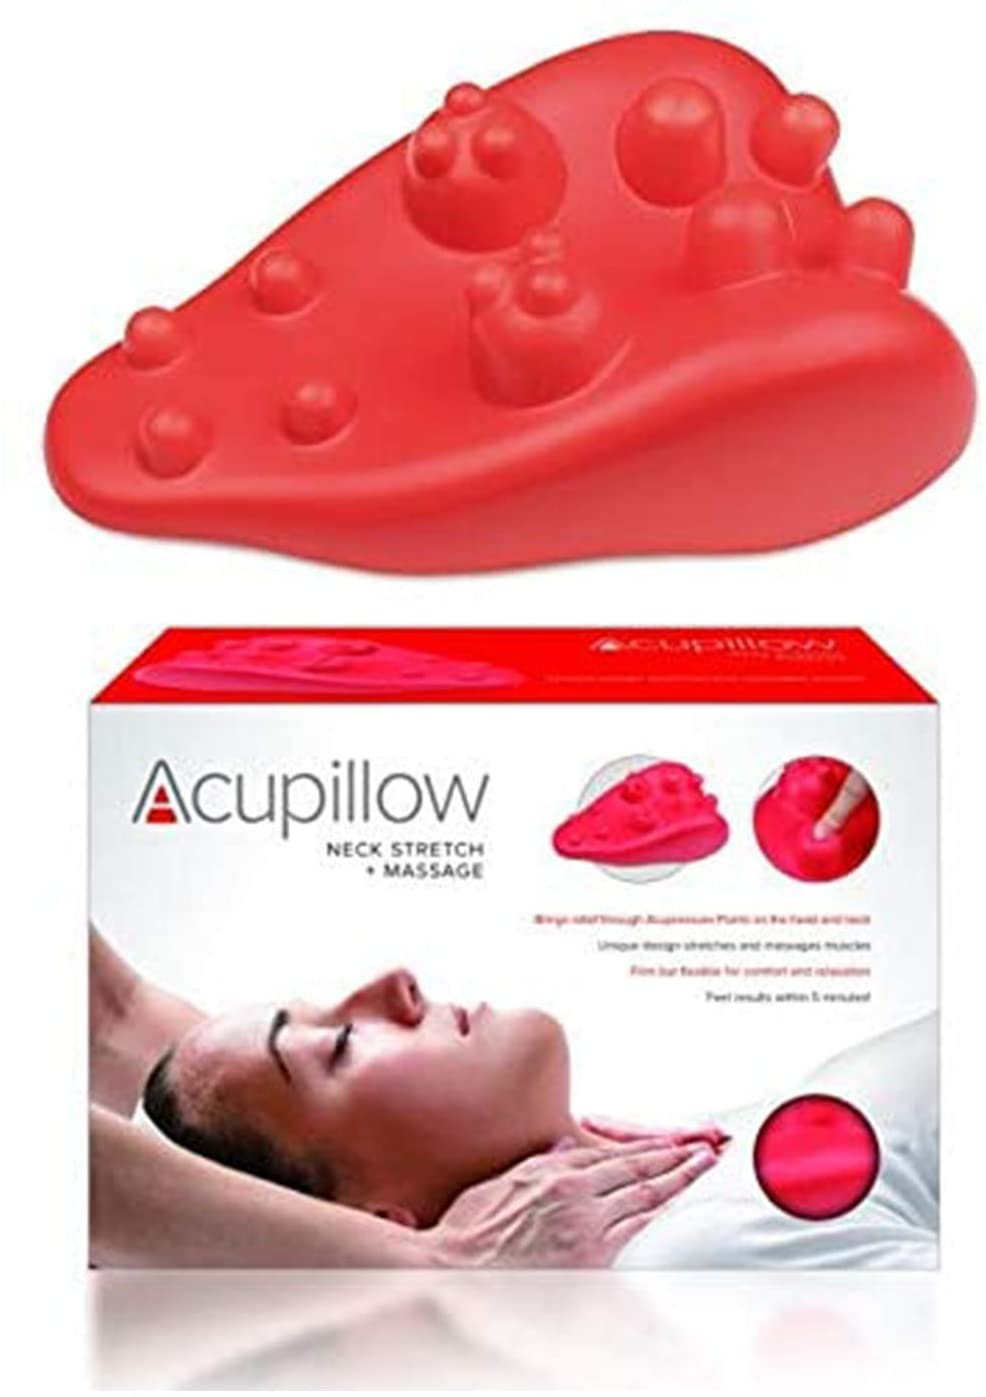 Neck Stretch Massage Trigger Point Chiropractic Pillow by Acupillow - Cervical Traction Stretcher Device - Myofascial Release of Pressure Point - Neck Pain